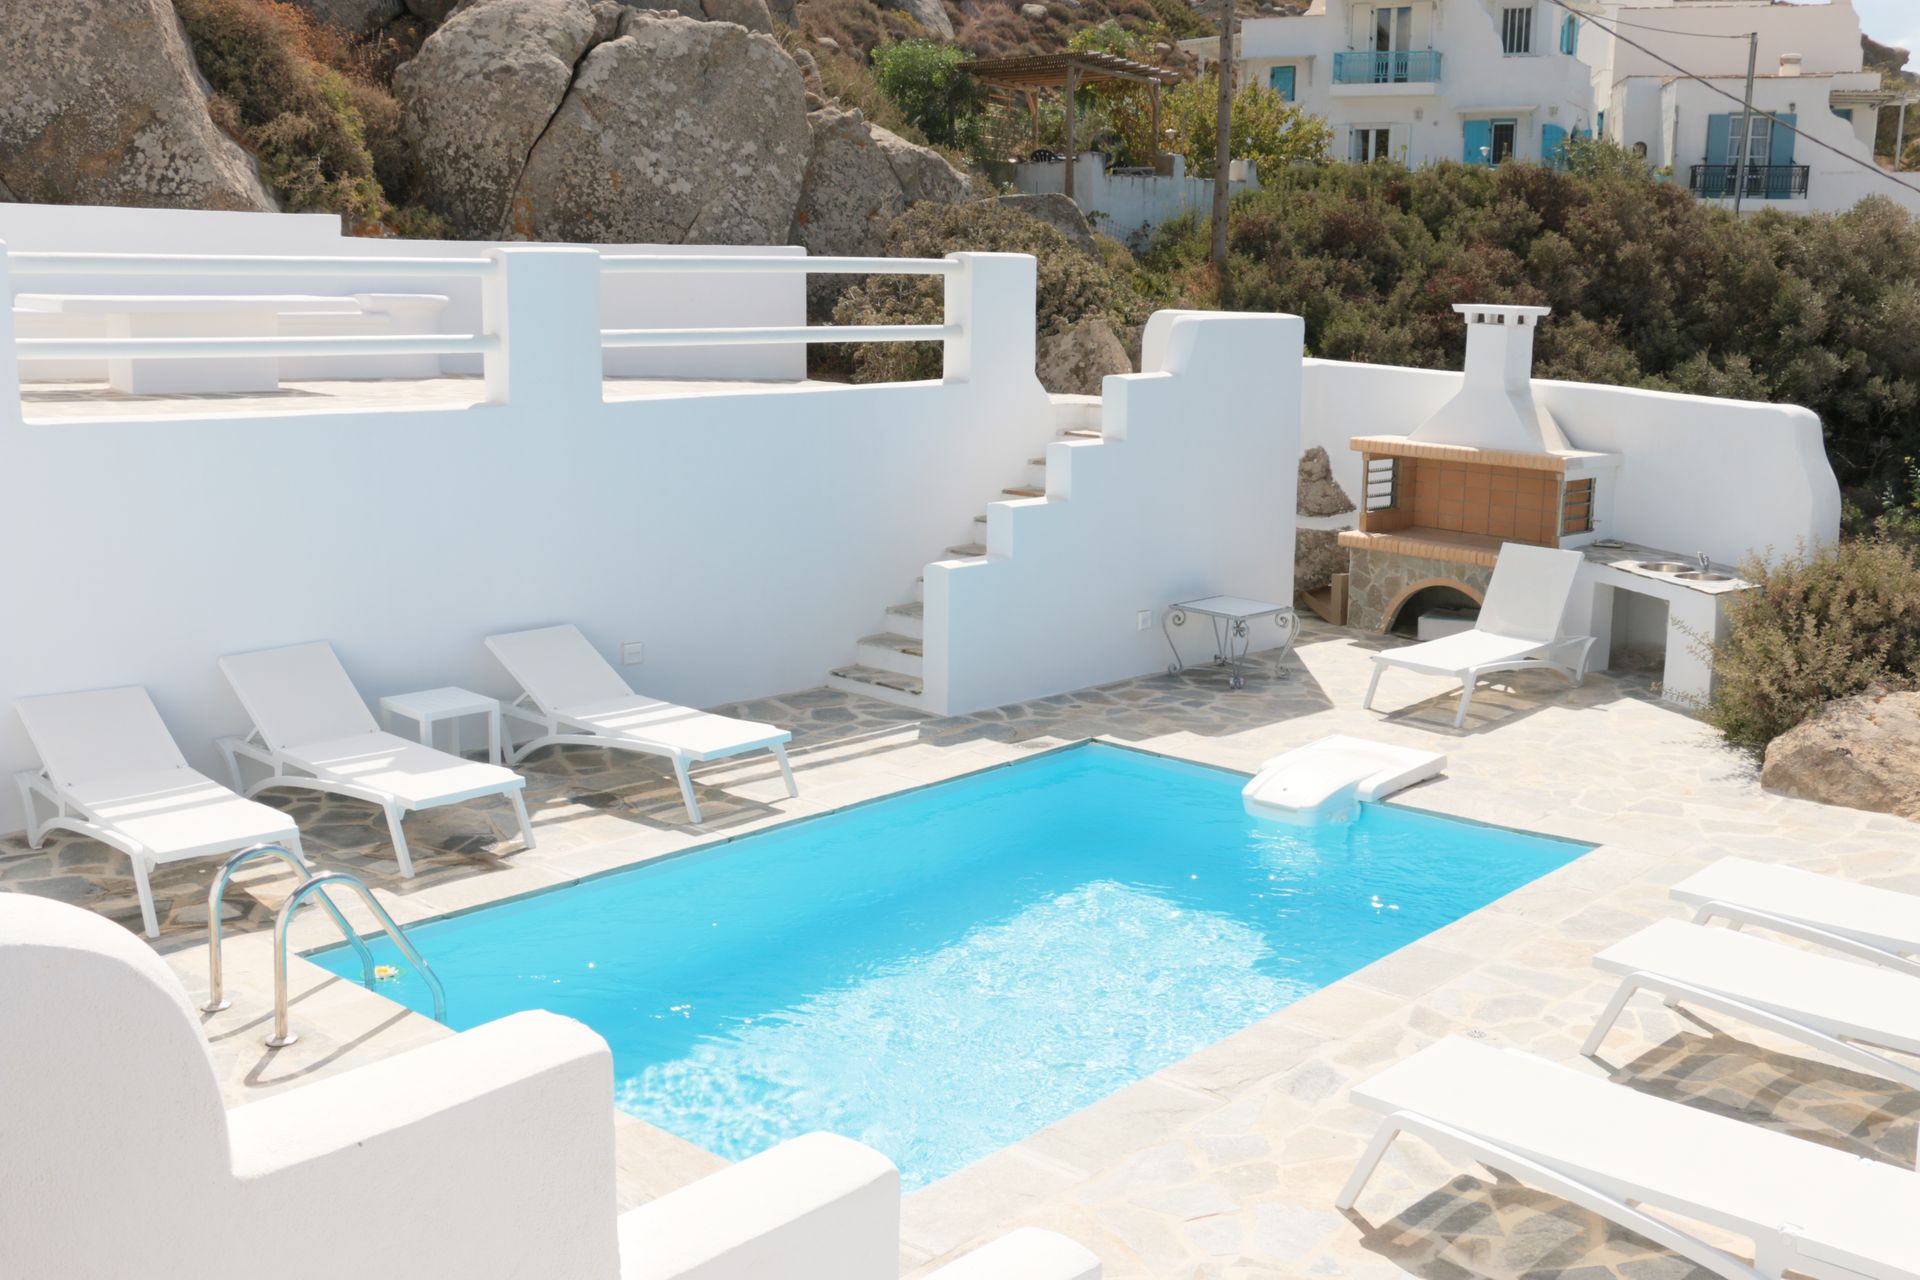 Apricot & Sea Luxury Villas - Νάξος ✦ 4 Ημέρες